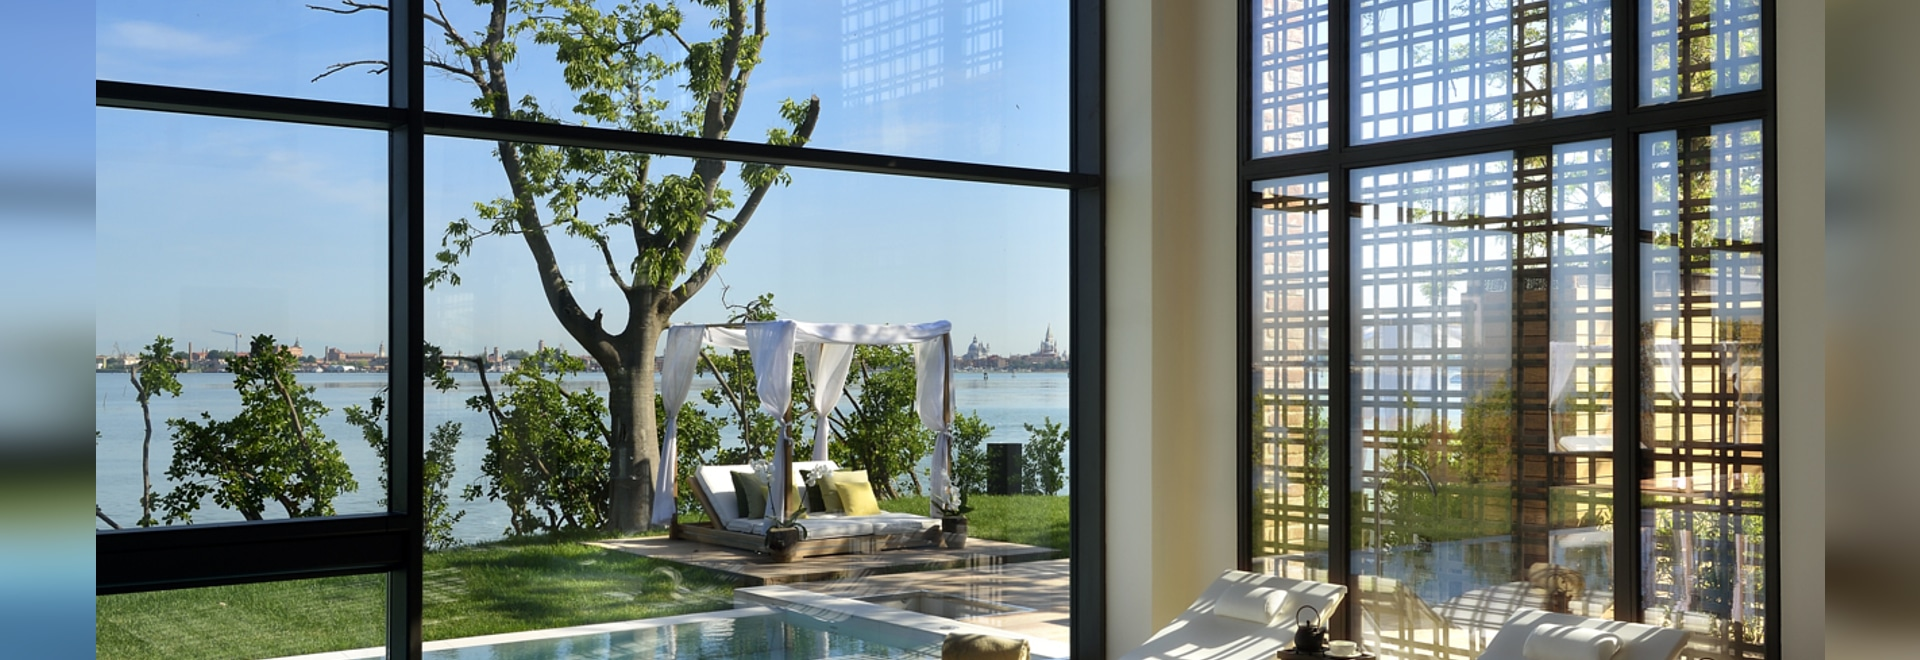 JW Marriott Venice Resort & Spa: lujosa e intemporal simplicidad